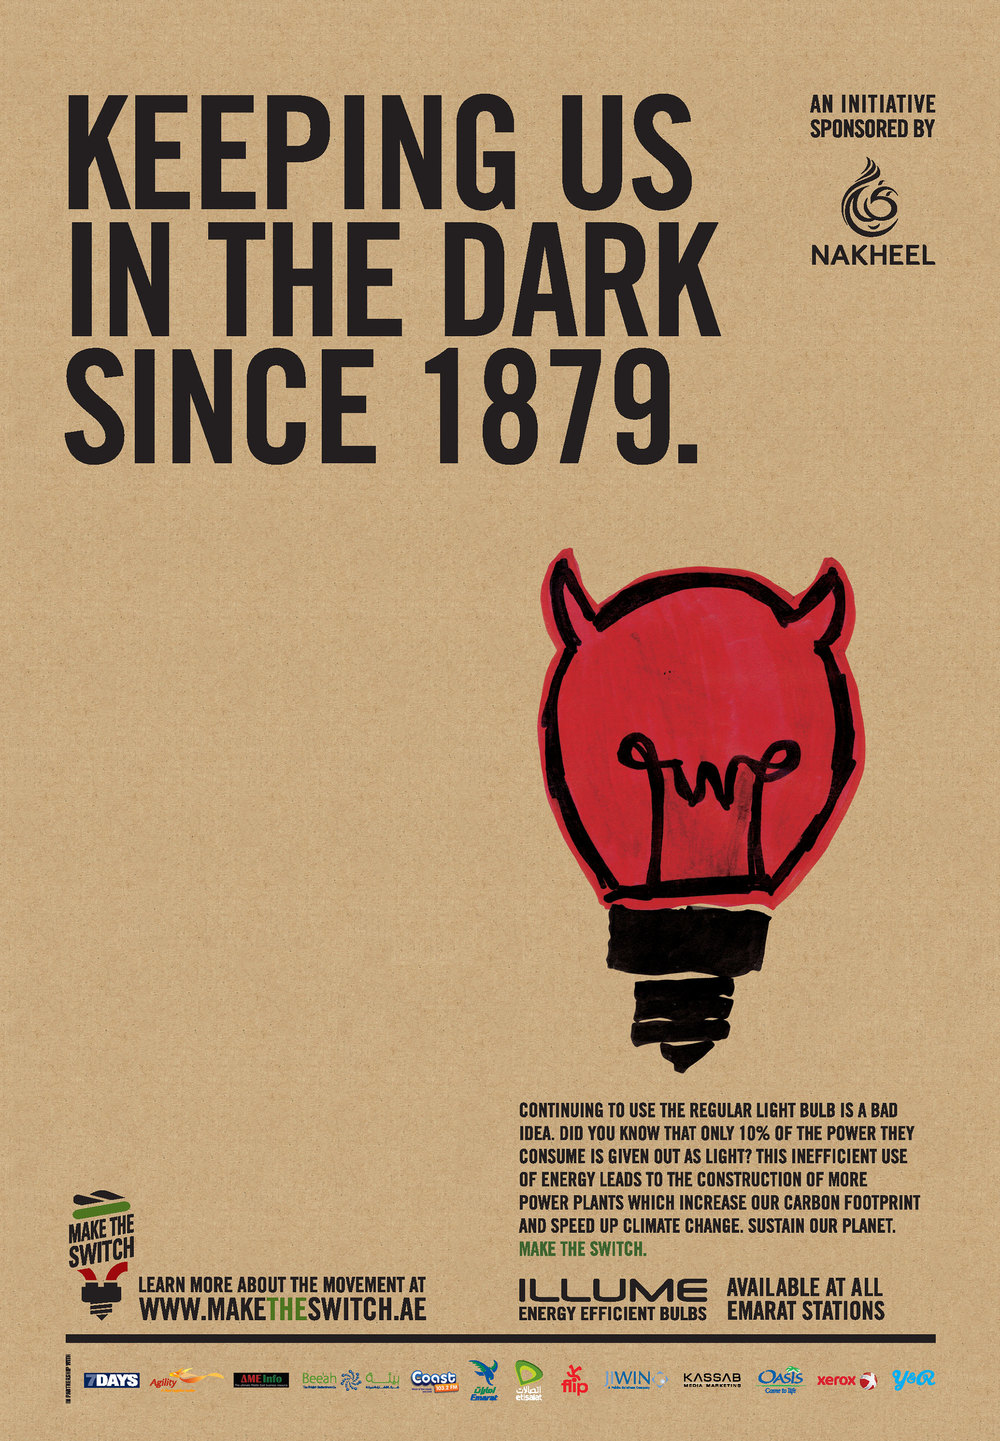 Keeping us in the dark since 1879.